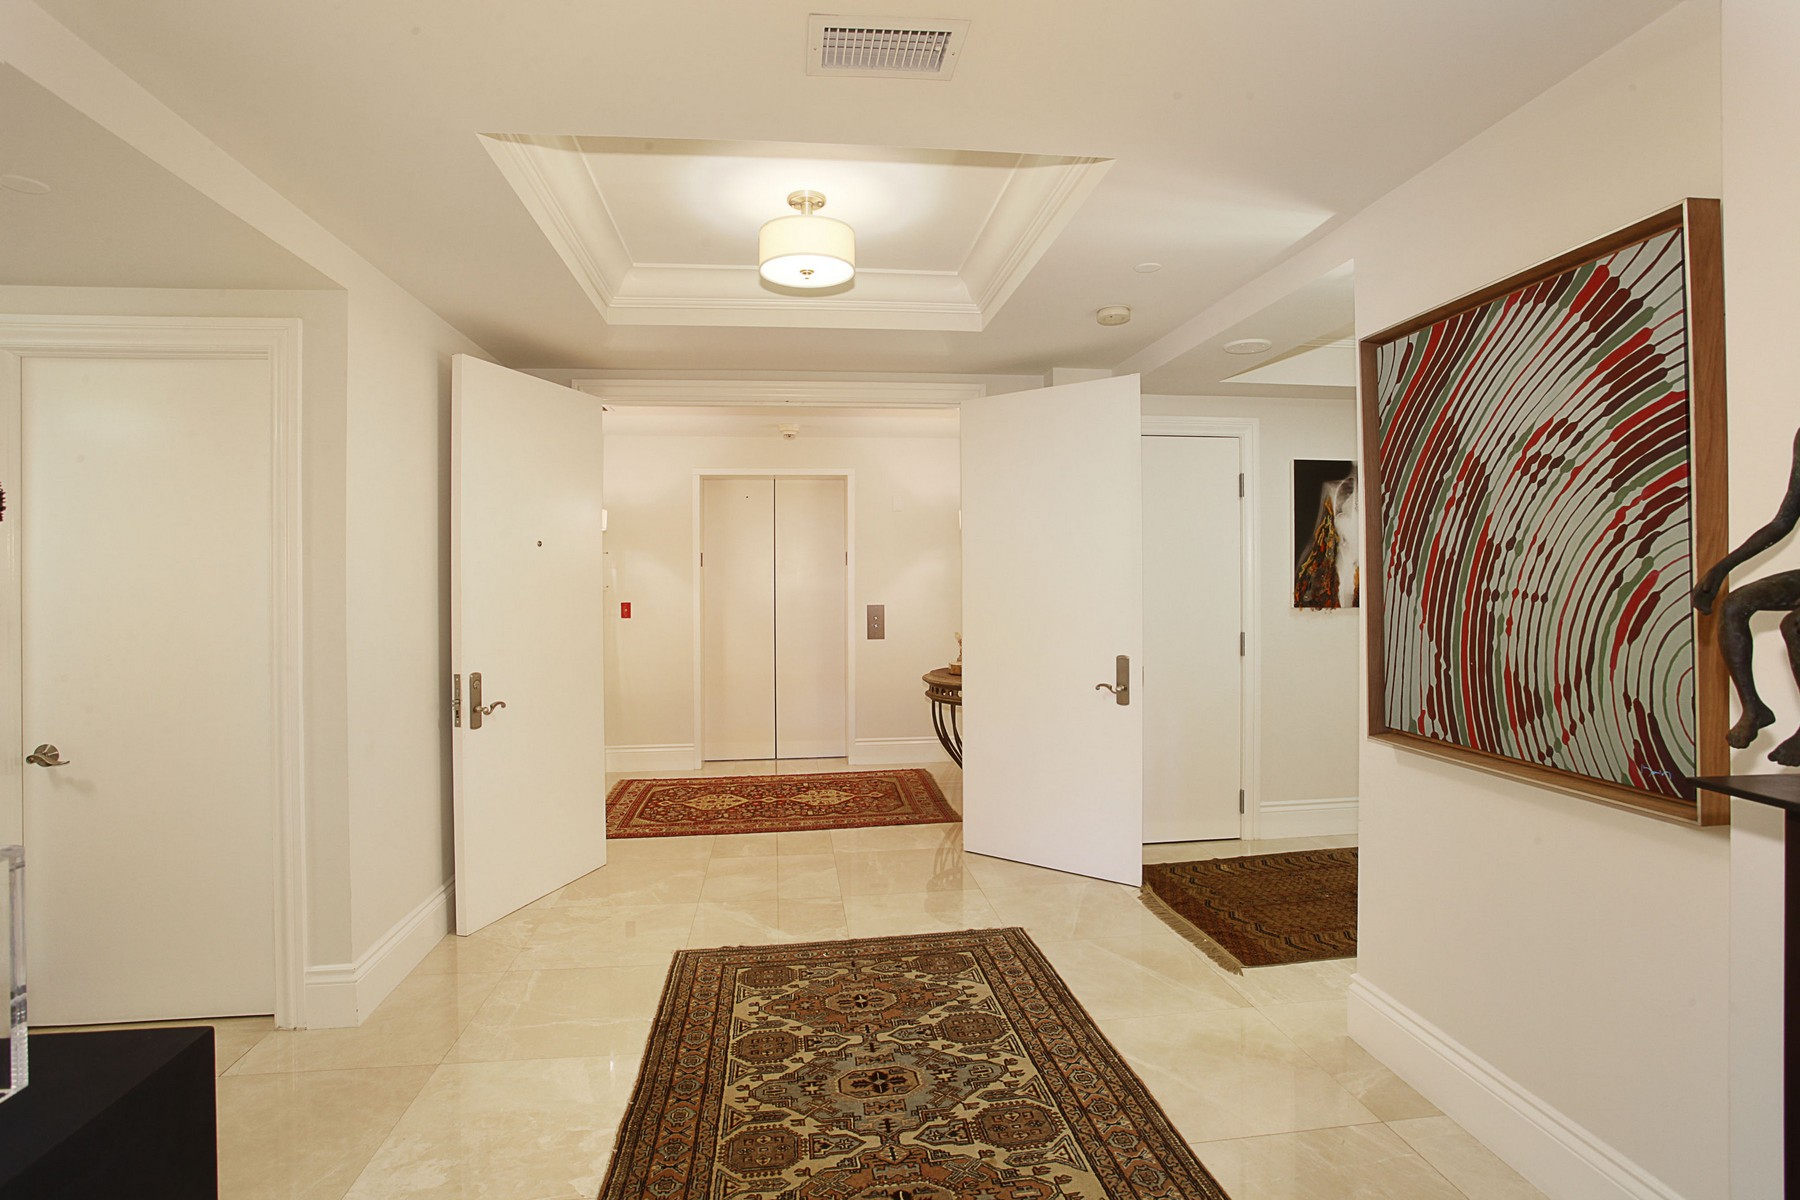 Condominium for Sale at Grand Bay Residences 445 Grand Bay Dr #208 Key Biscayne, Florida 33149 United States